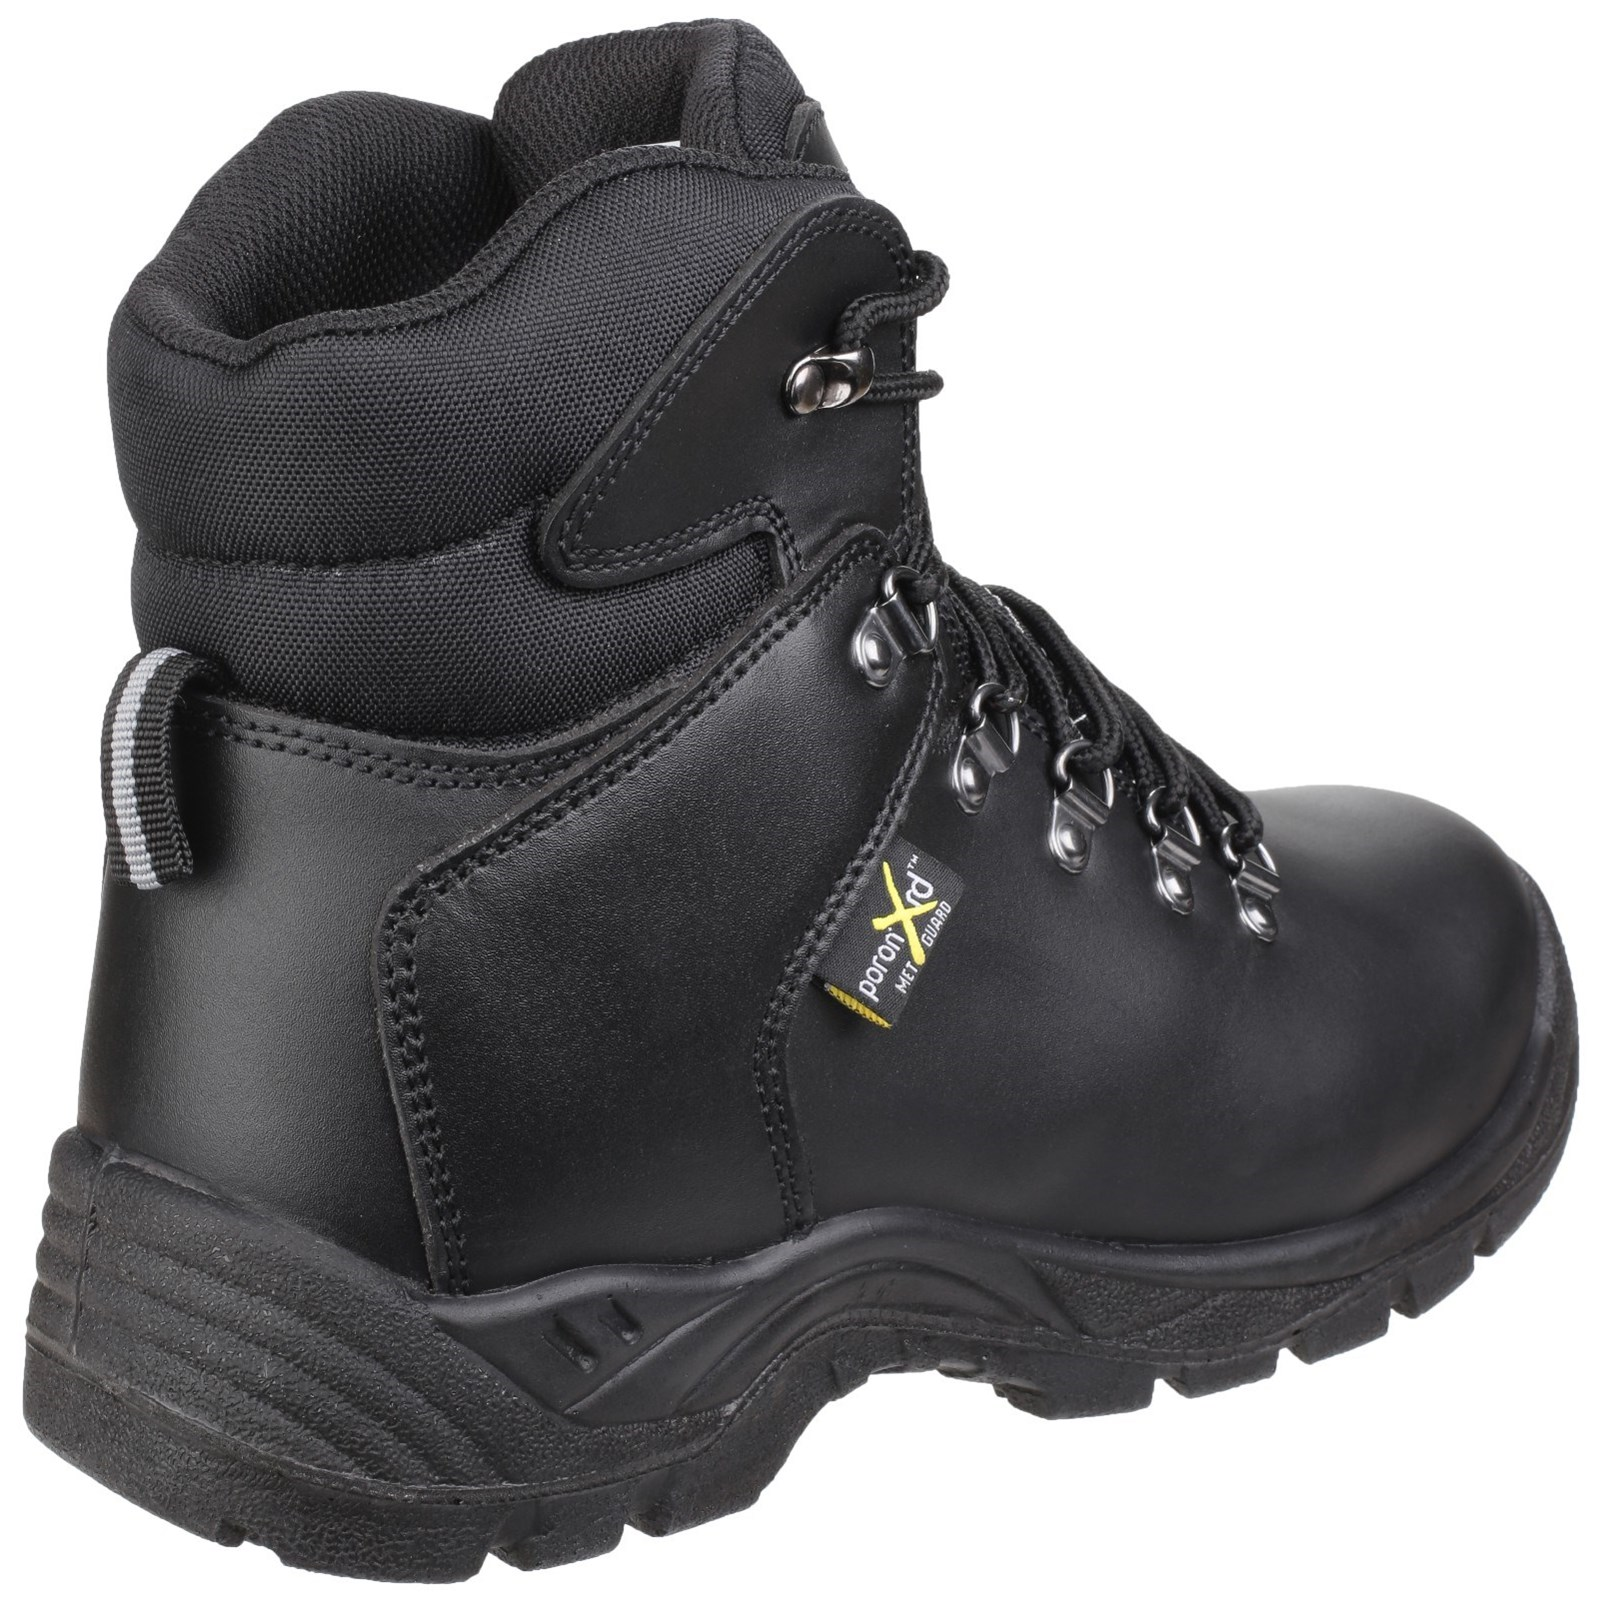 Amblers-Safety-AS335-Mens-Internal-Metatarsal-Safety-Boots-FS4630 thumbnail 9